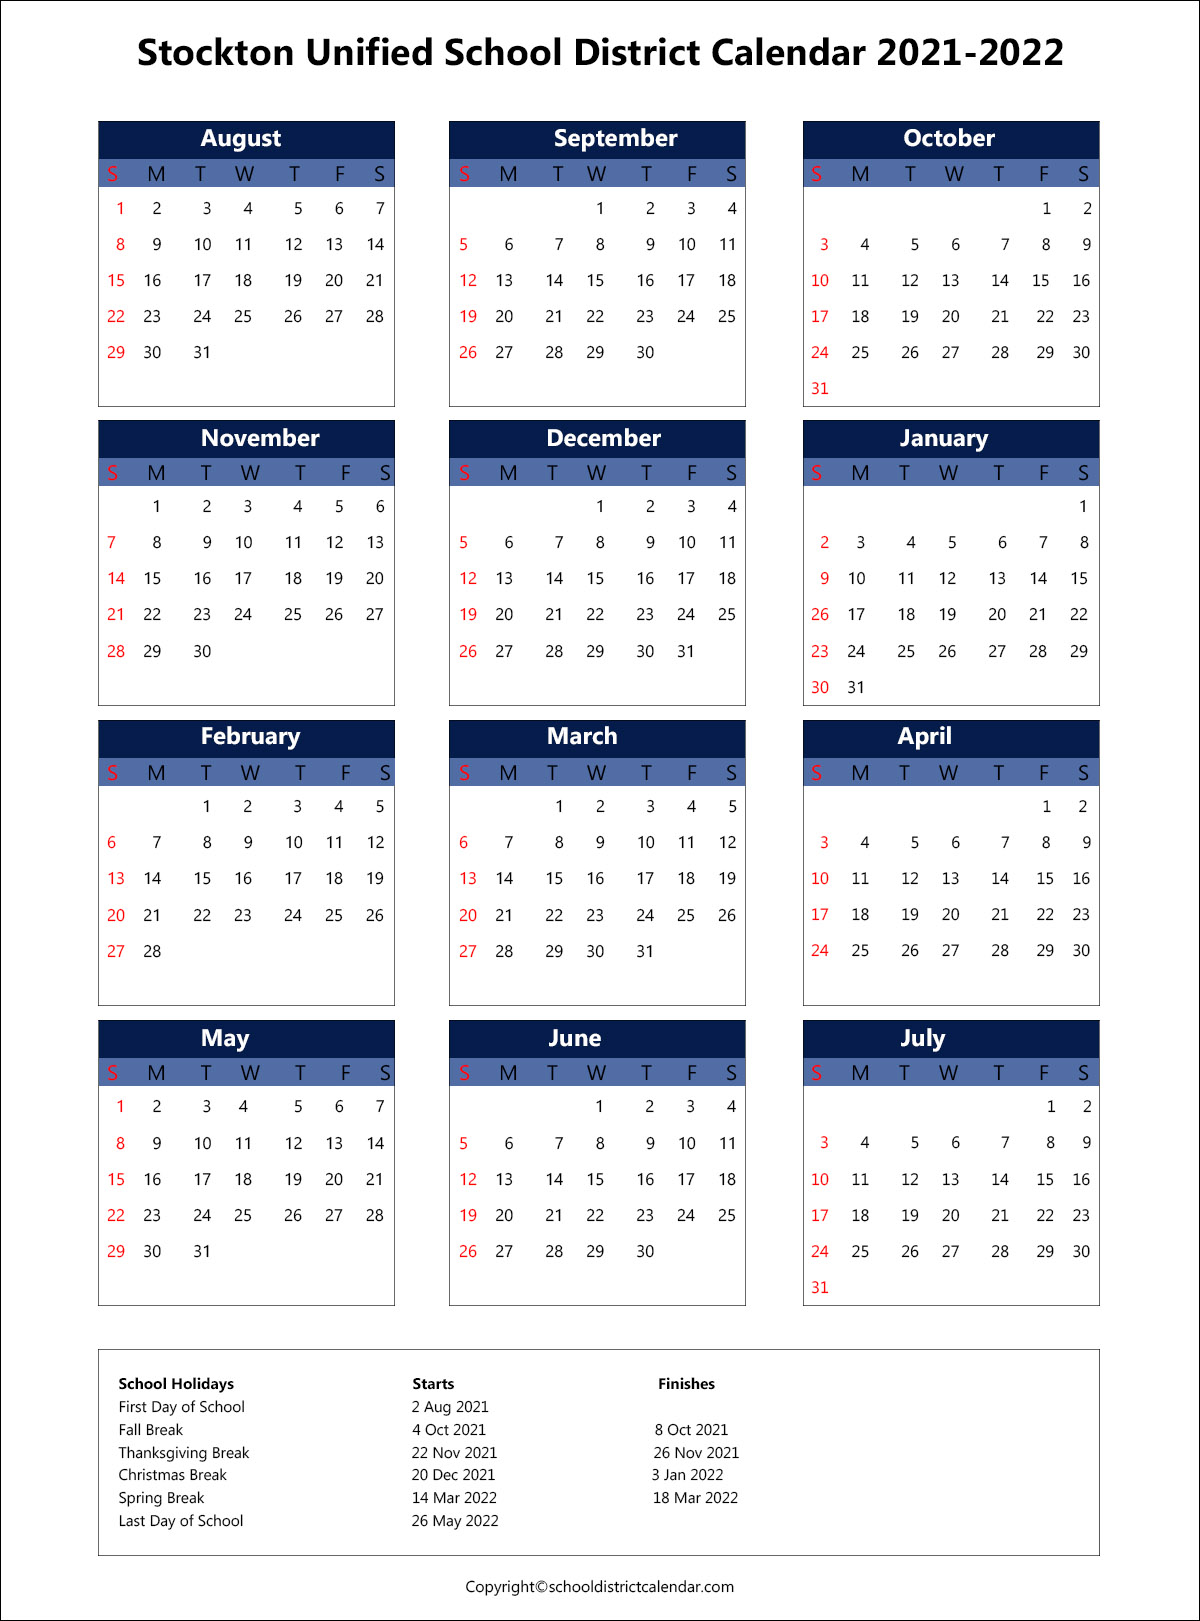 Stockton Unified School District Calendar 2021